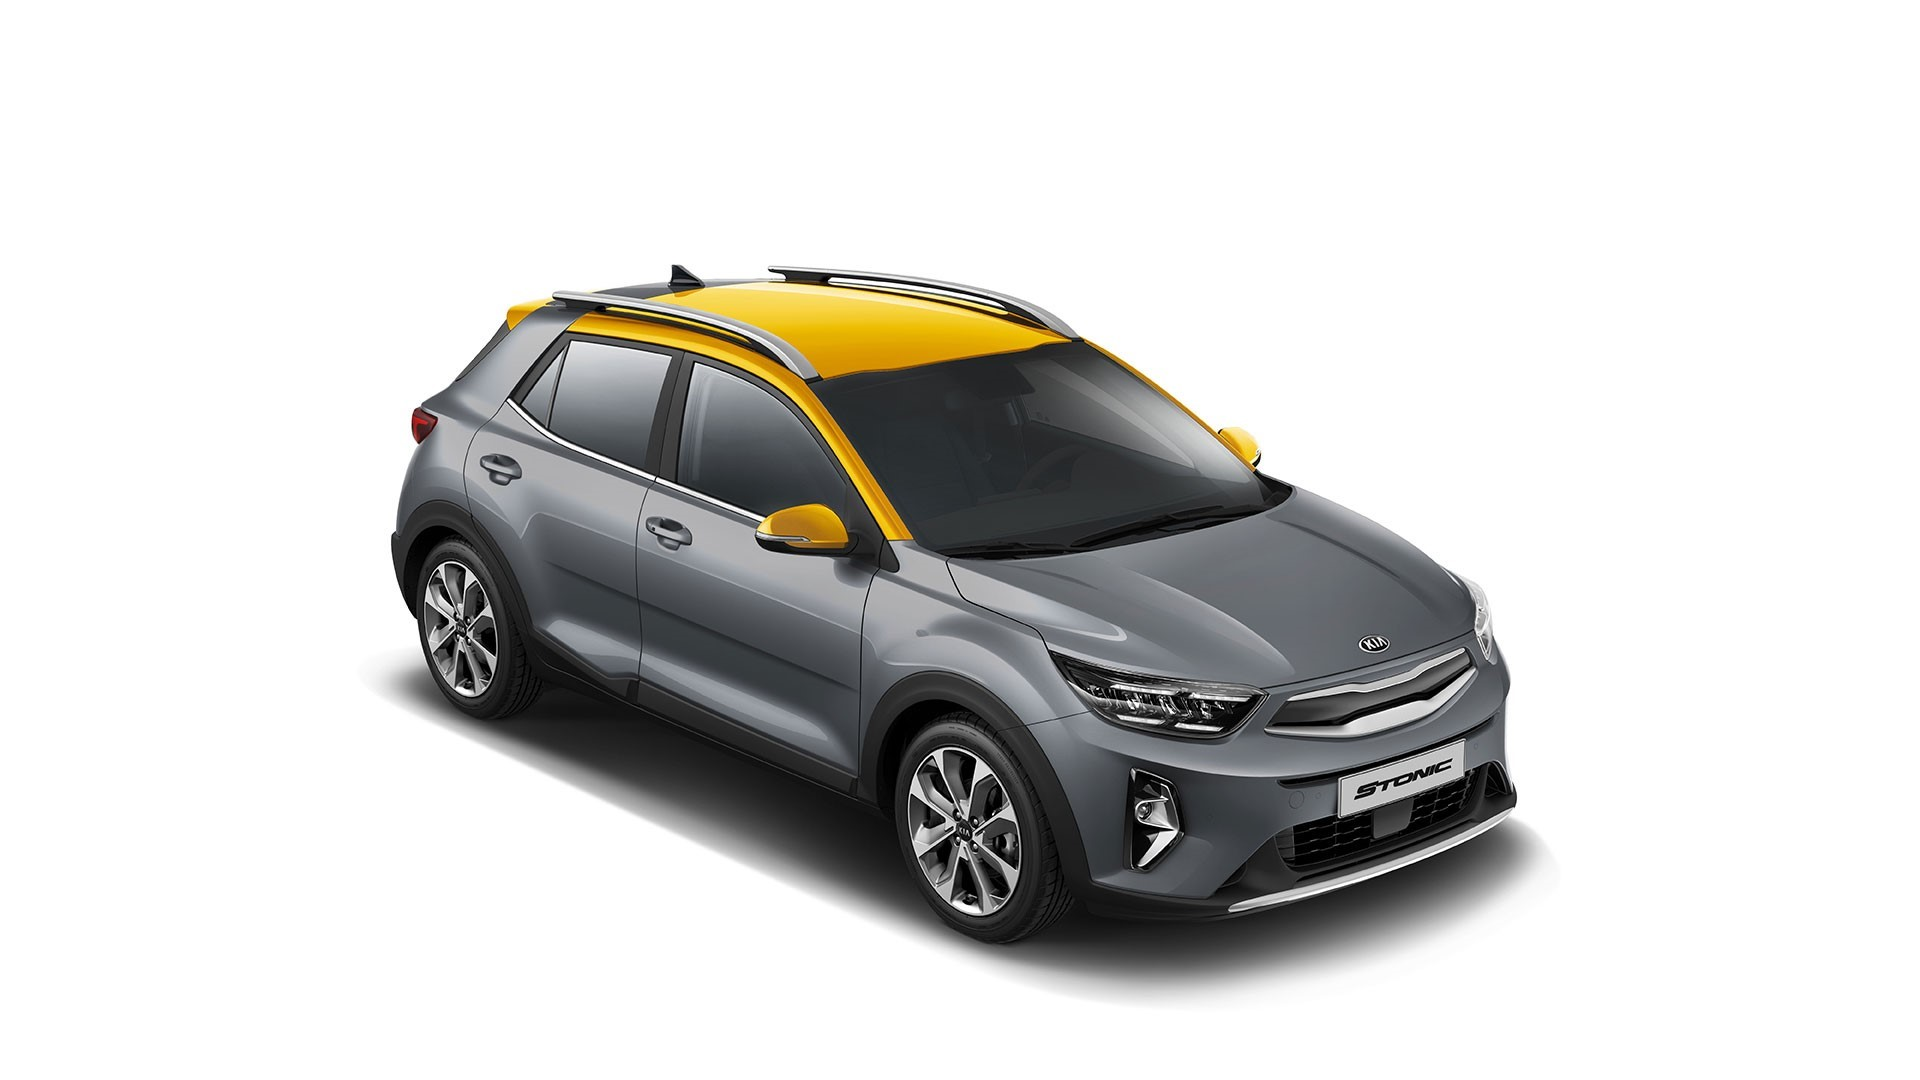 Mild-hybrid power, connectivity and new driver assistance tech for upgraded Kia Stonic - Image 3